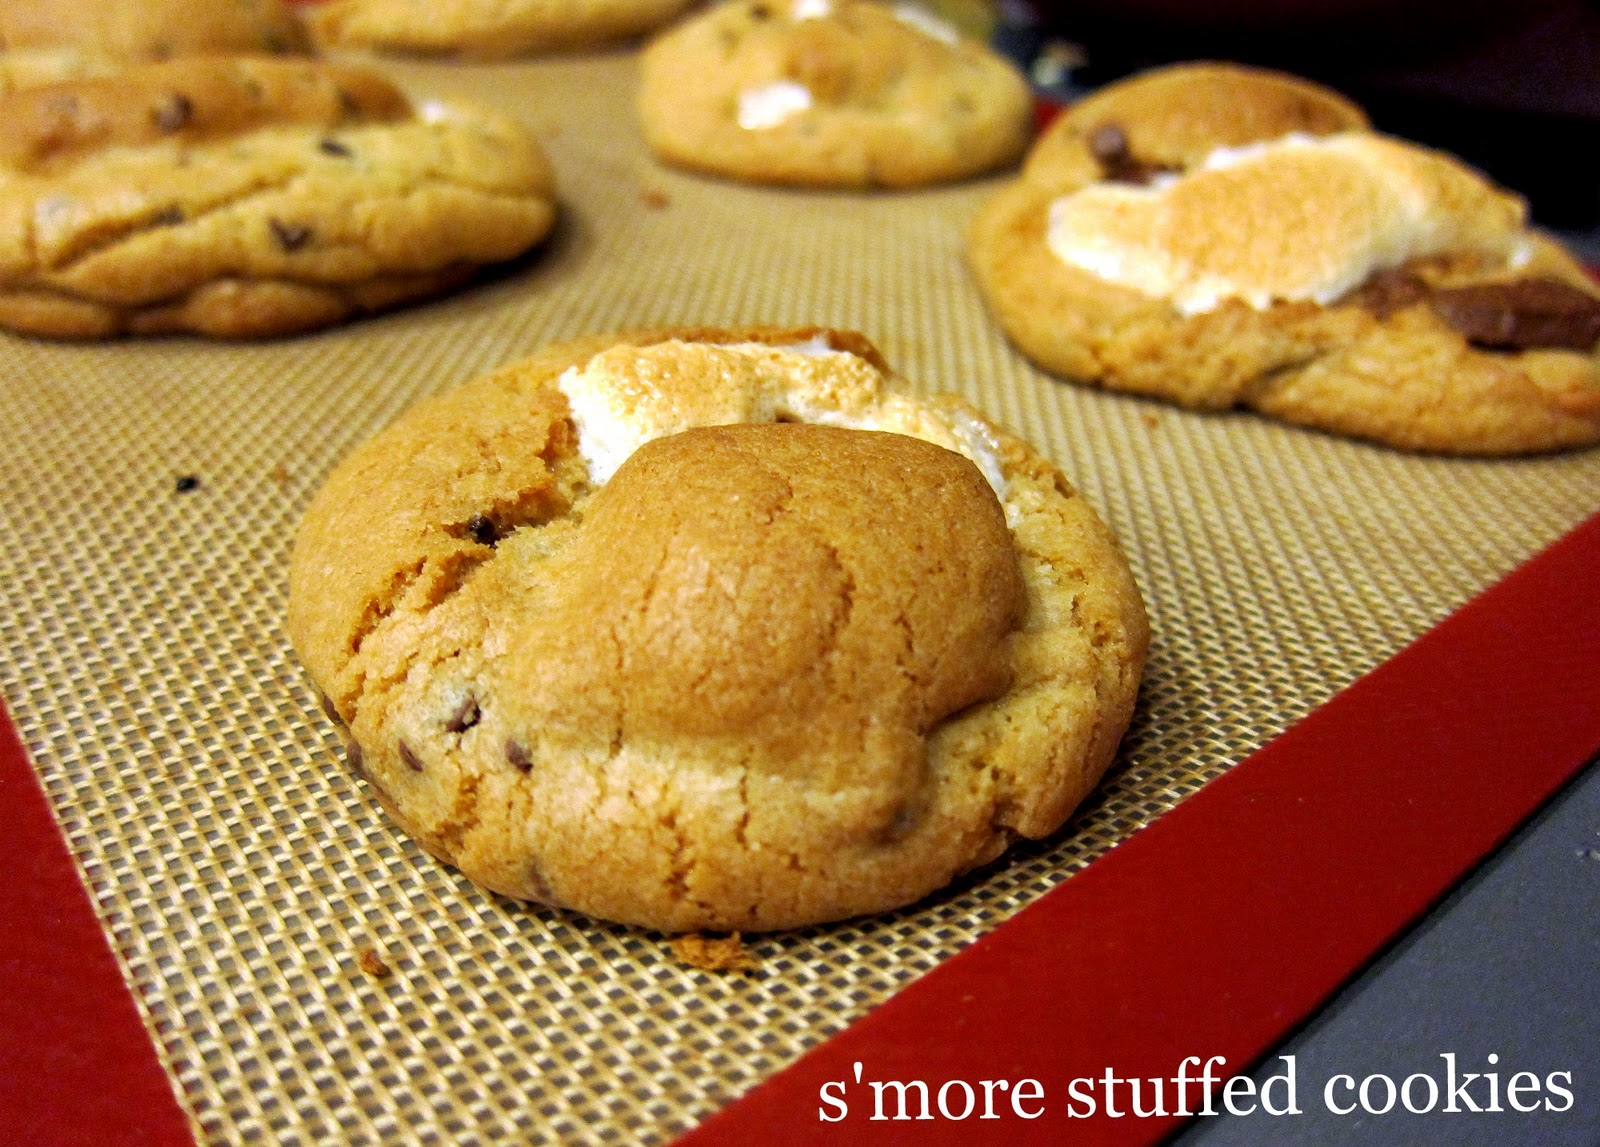 ... more? Awesome. Chocolate chip cookie? Yes. S'more...inside a cookie